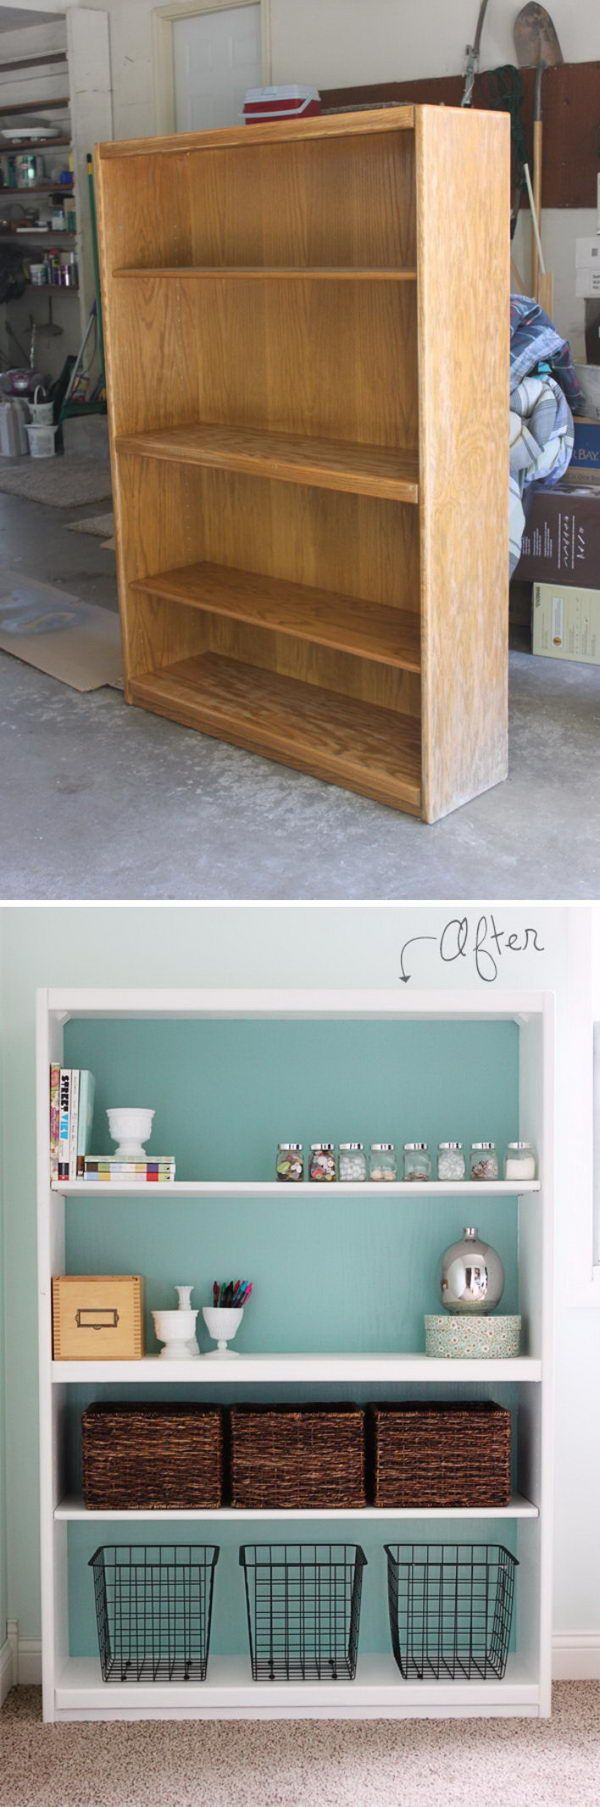 How To Paint Furniture Best 25 Painting Old Furniture Ideas On Pinterest  How To Paint